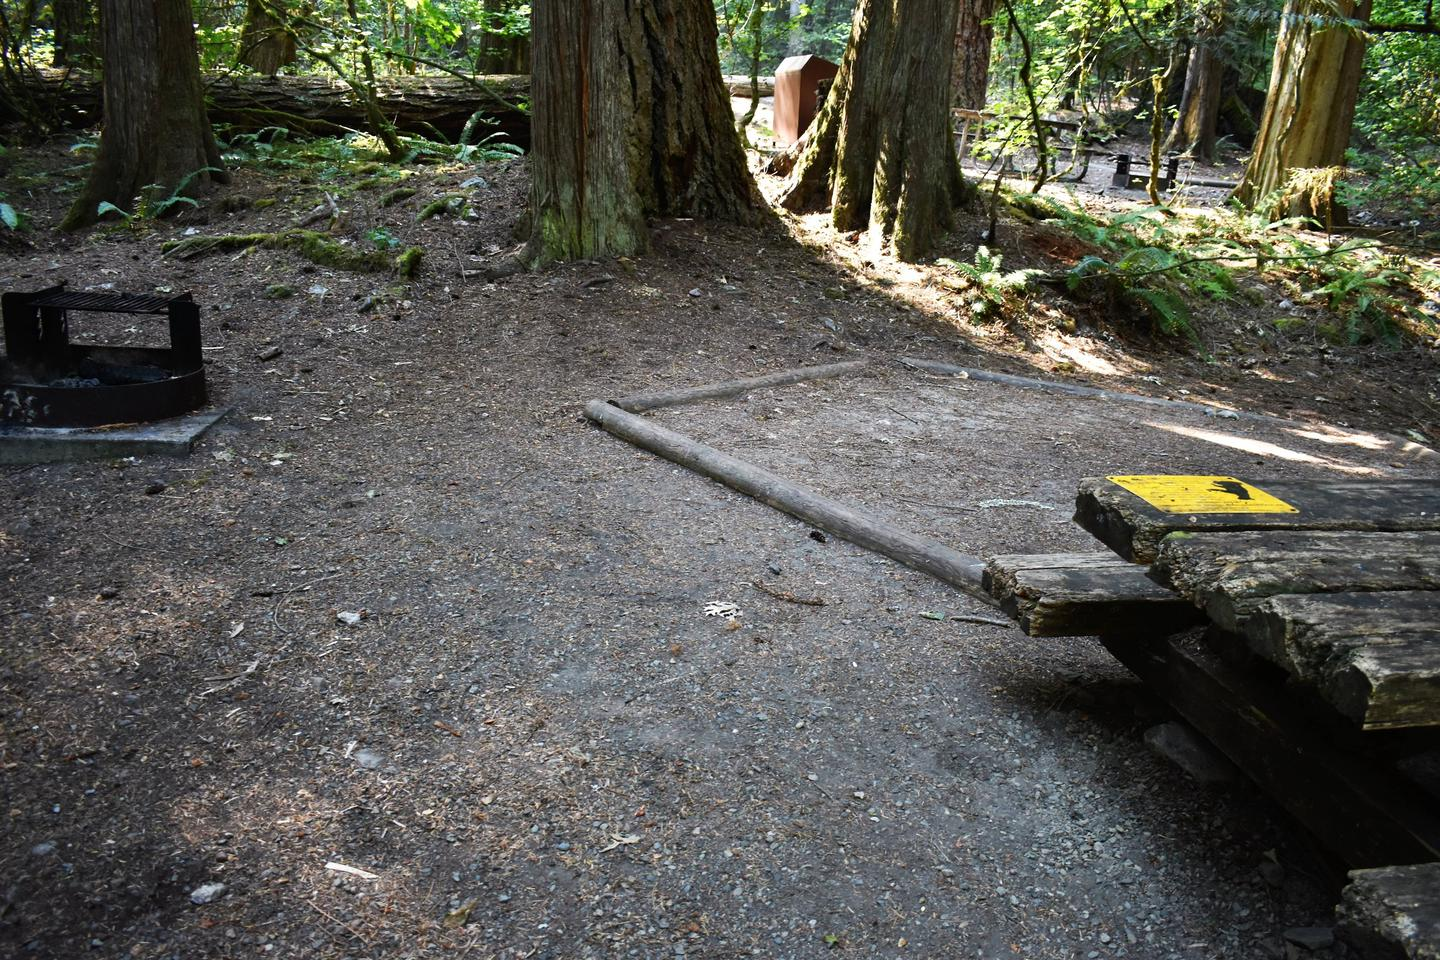 Fire ring, tent pad, and picnic tableView of campsite